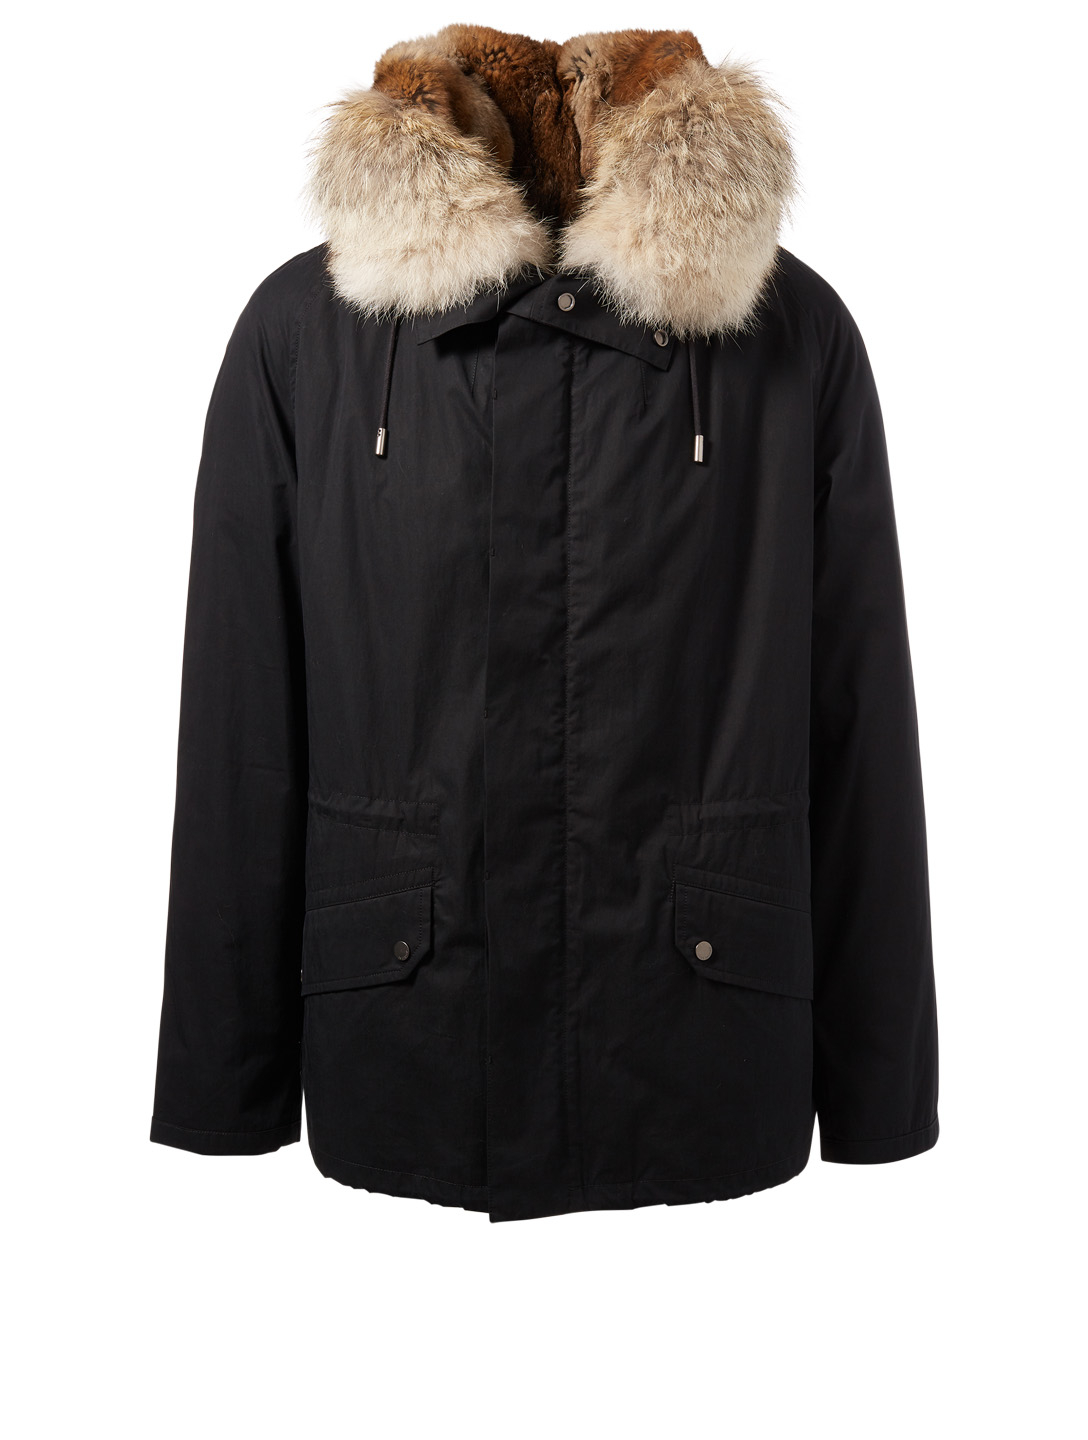 YVES SALOMON - ARMY Short Parka With Fur Men's Black